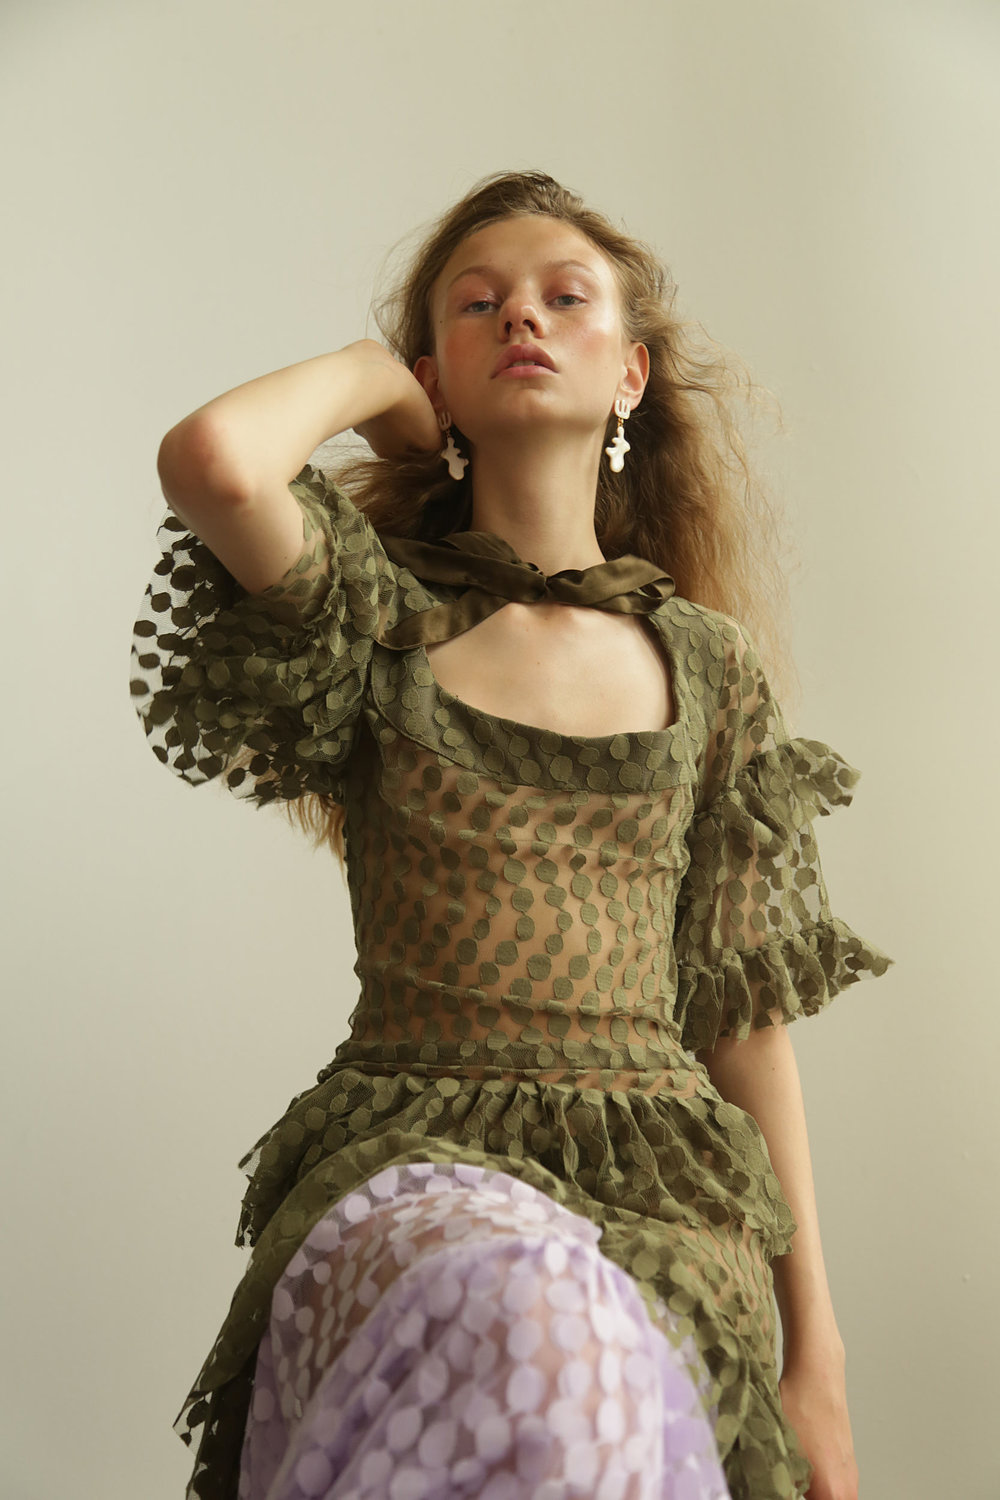 Ensemble by Raissa Biscotti on Anniversary Magazine14.jpg